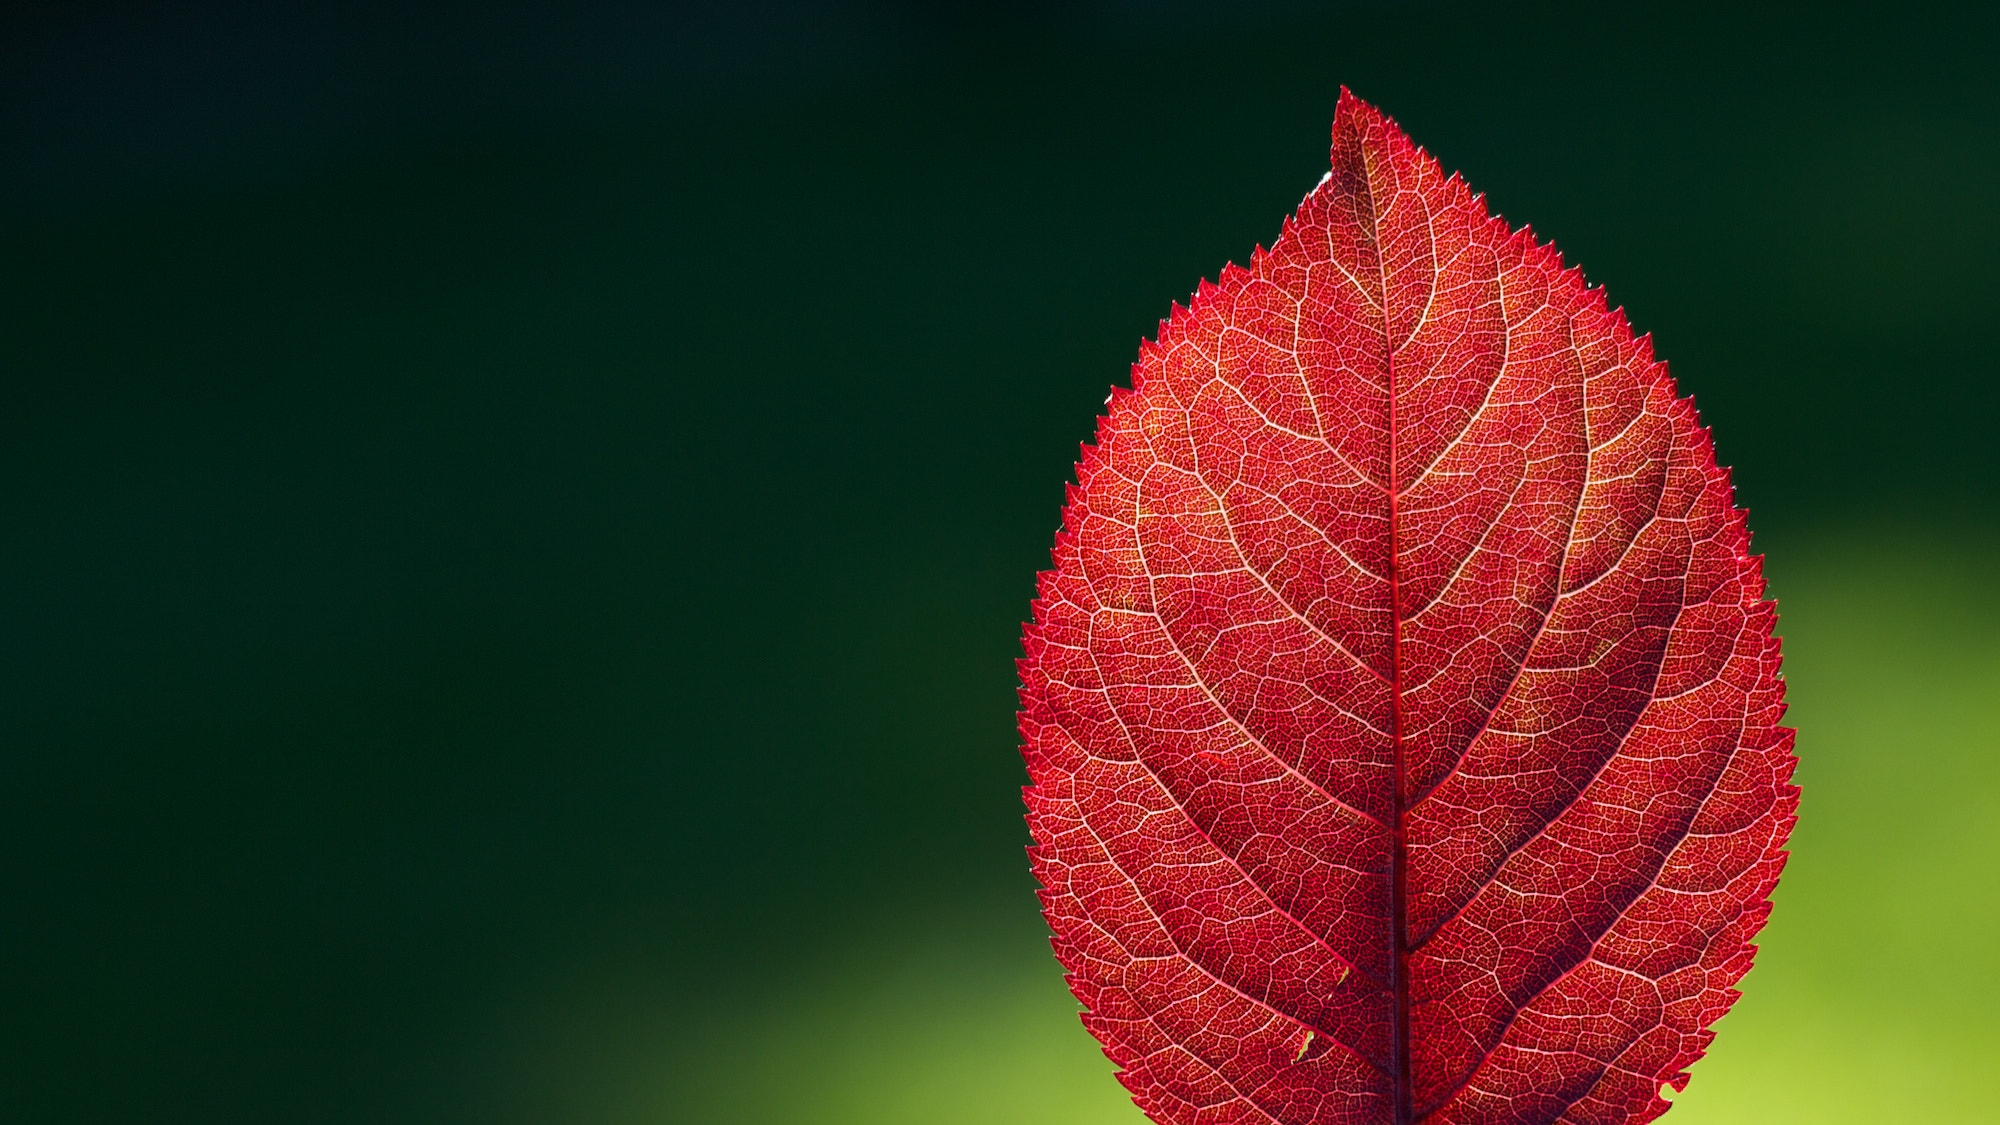 Photograph Hoja Roja by Pablo Castro on 500px